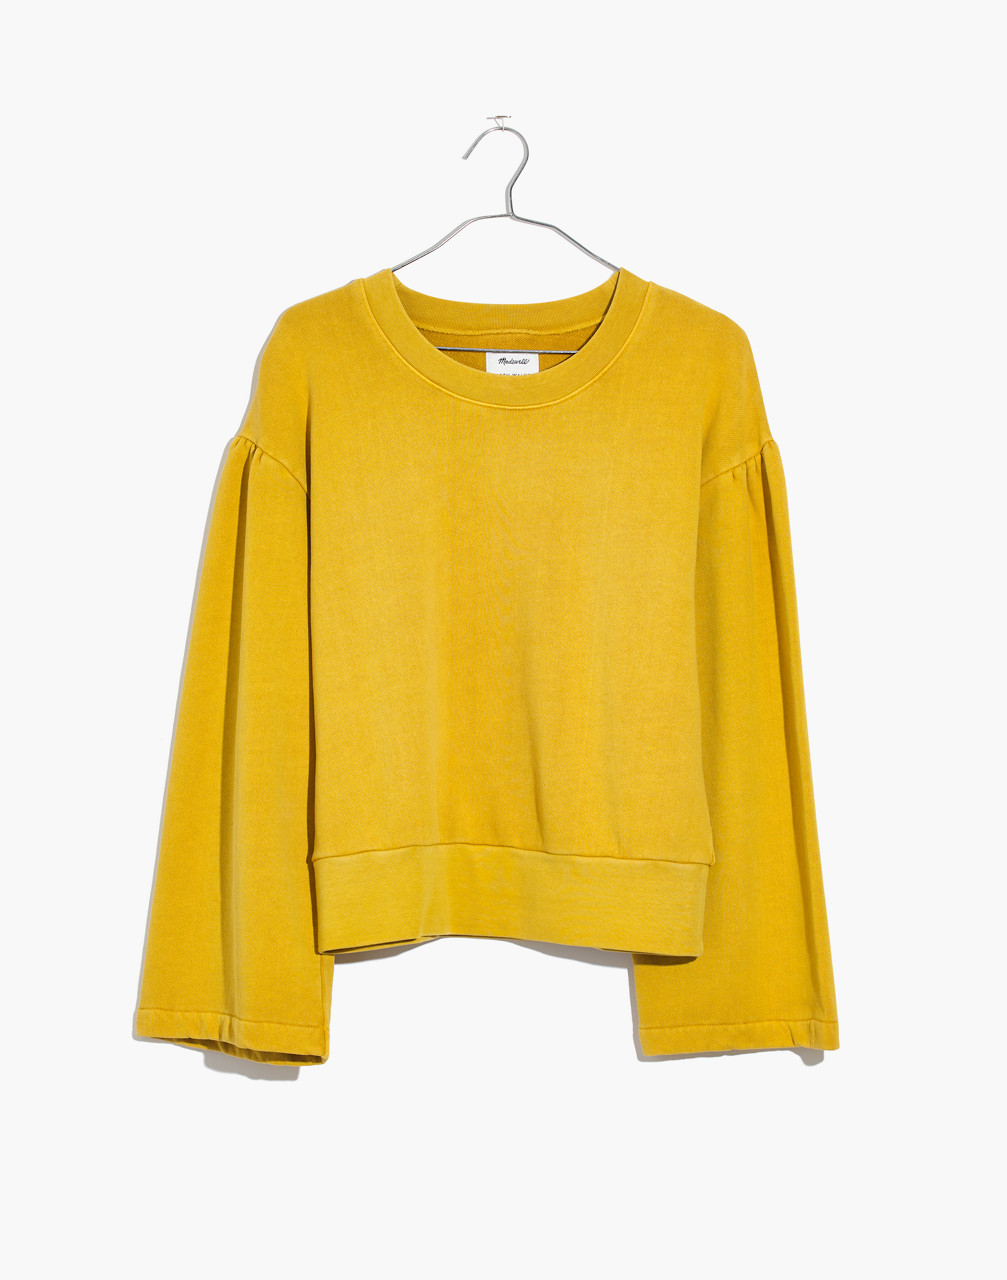 Madewell x Karen Walker® Garment-Dyed Sweatshirt in golden apple image 1